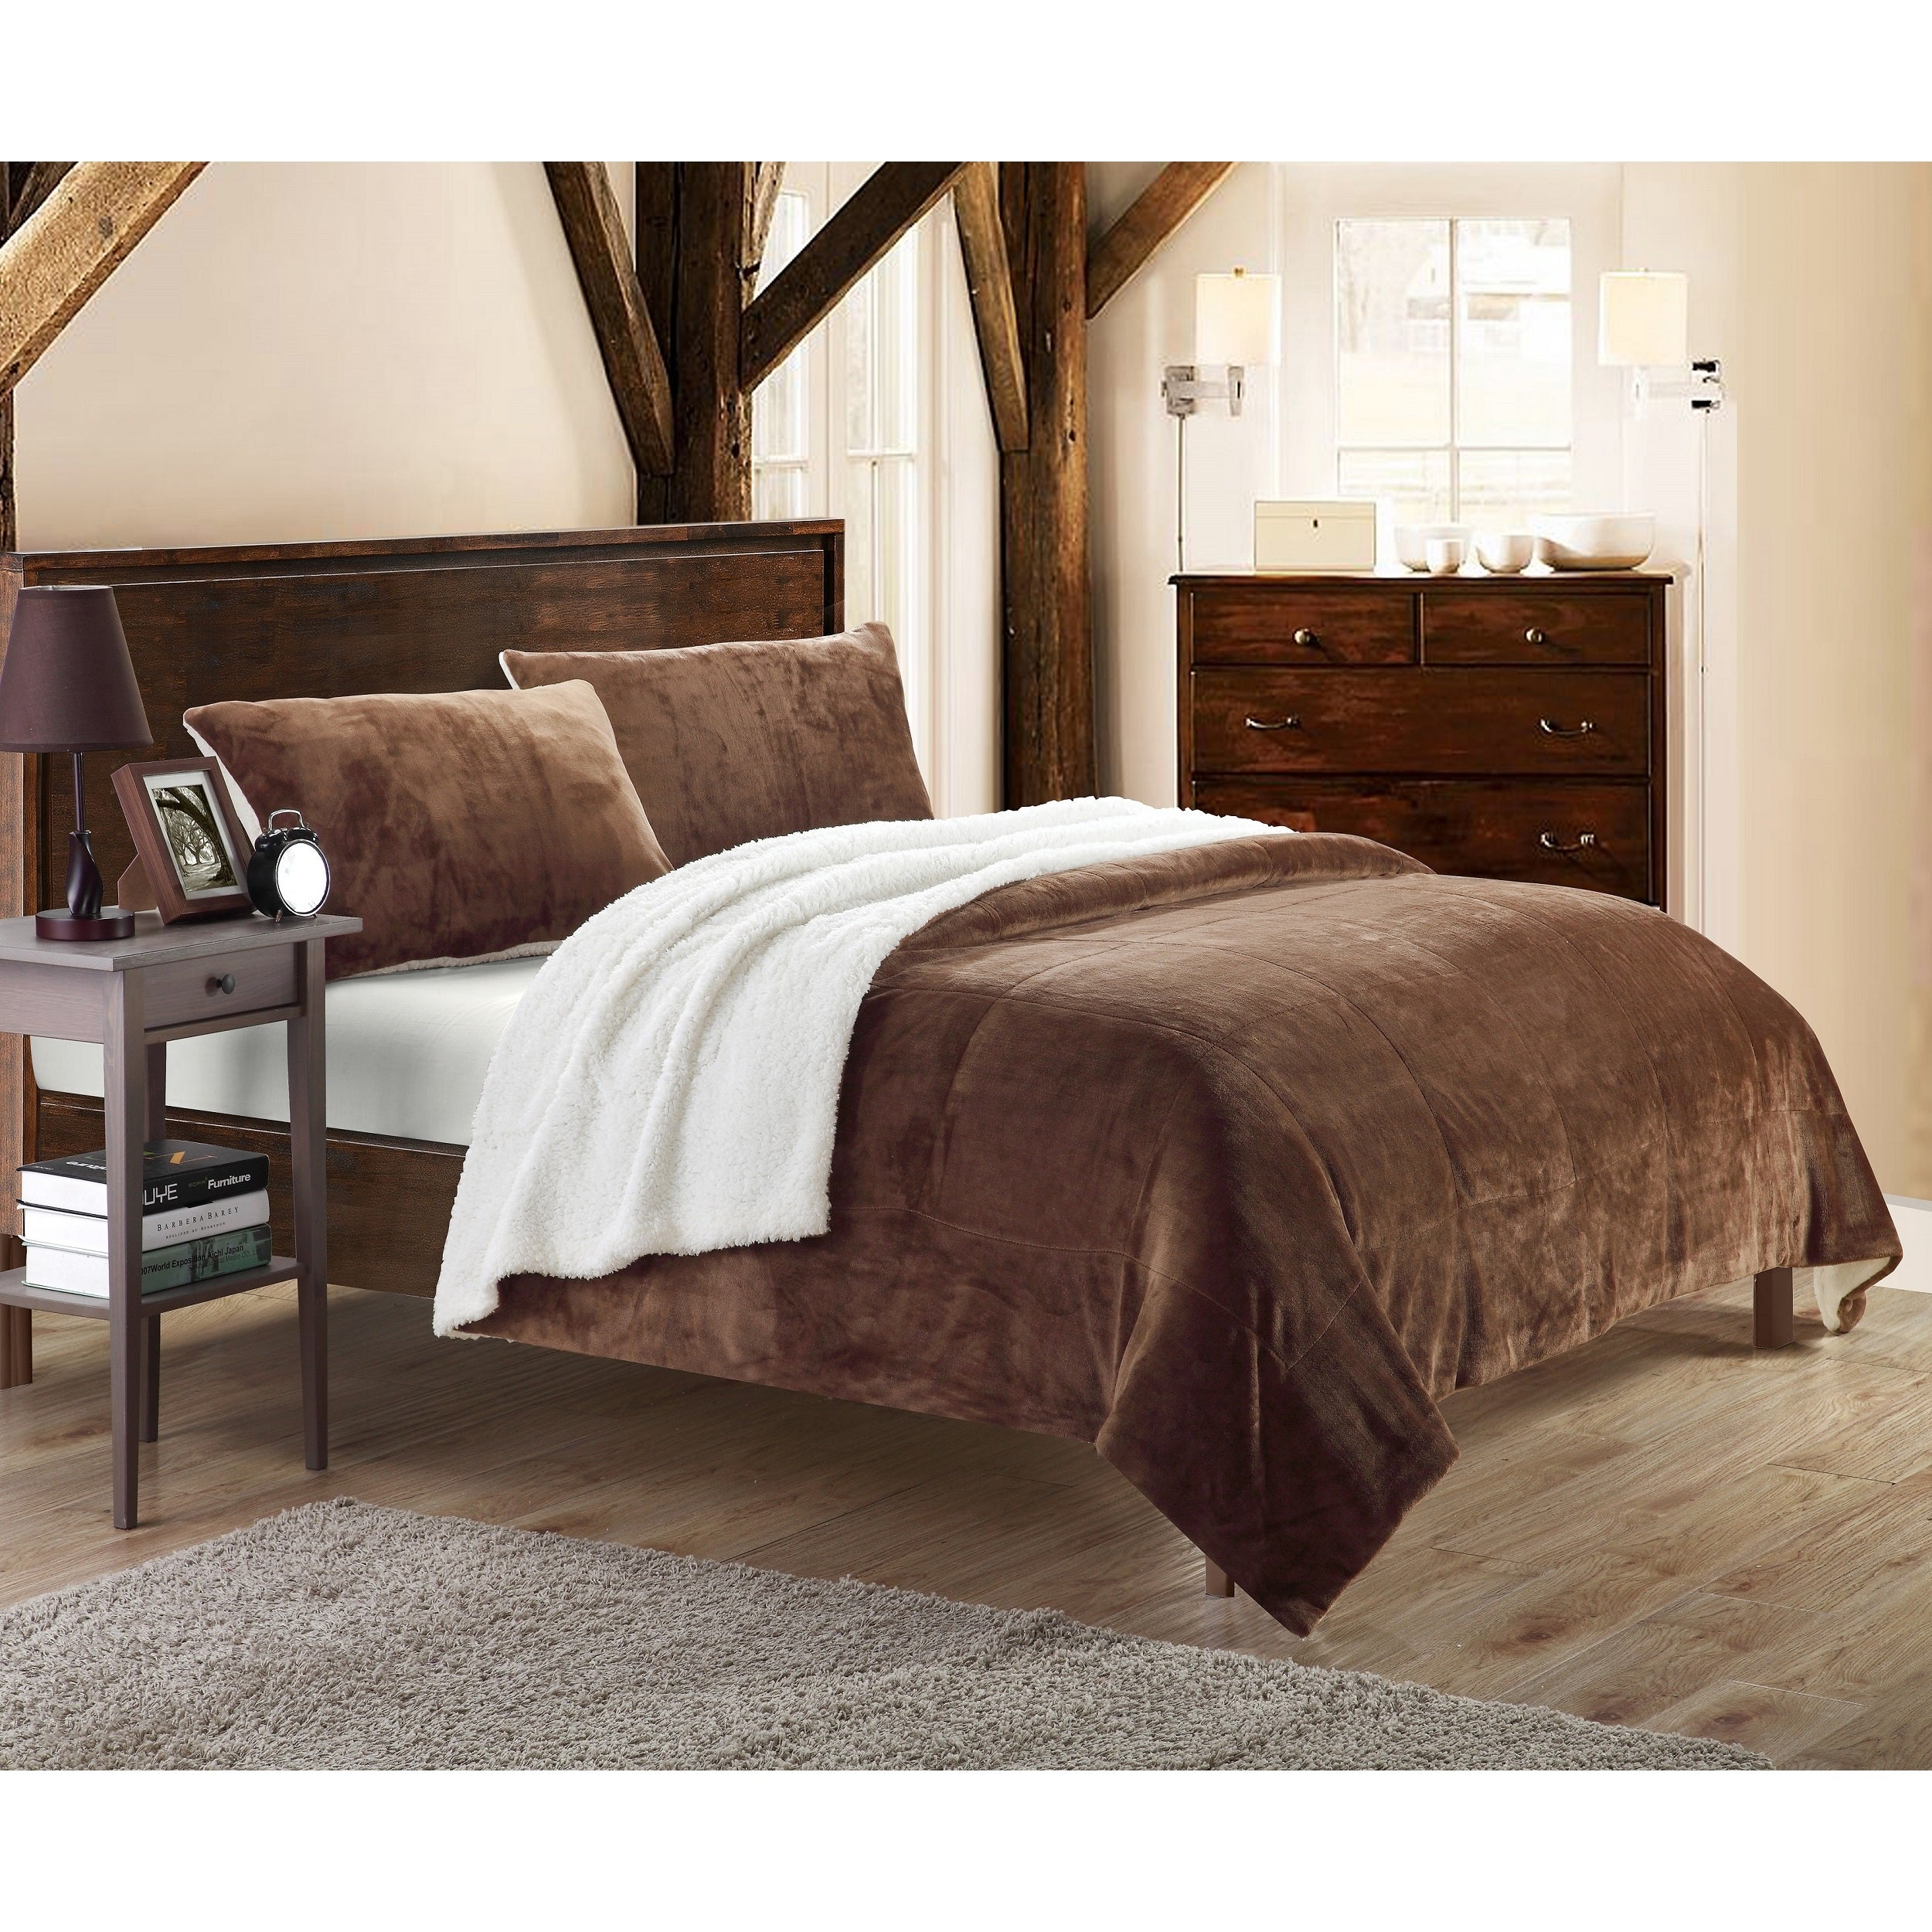 microsuede piece set home pin chic brown comforter sherpa lined micro suede queen plush chloe